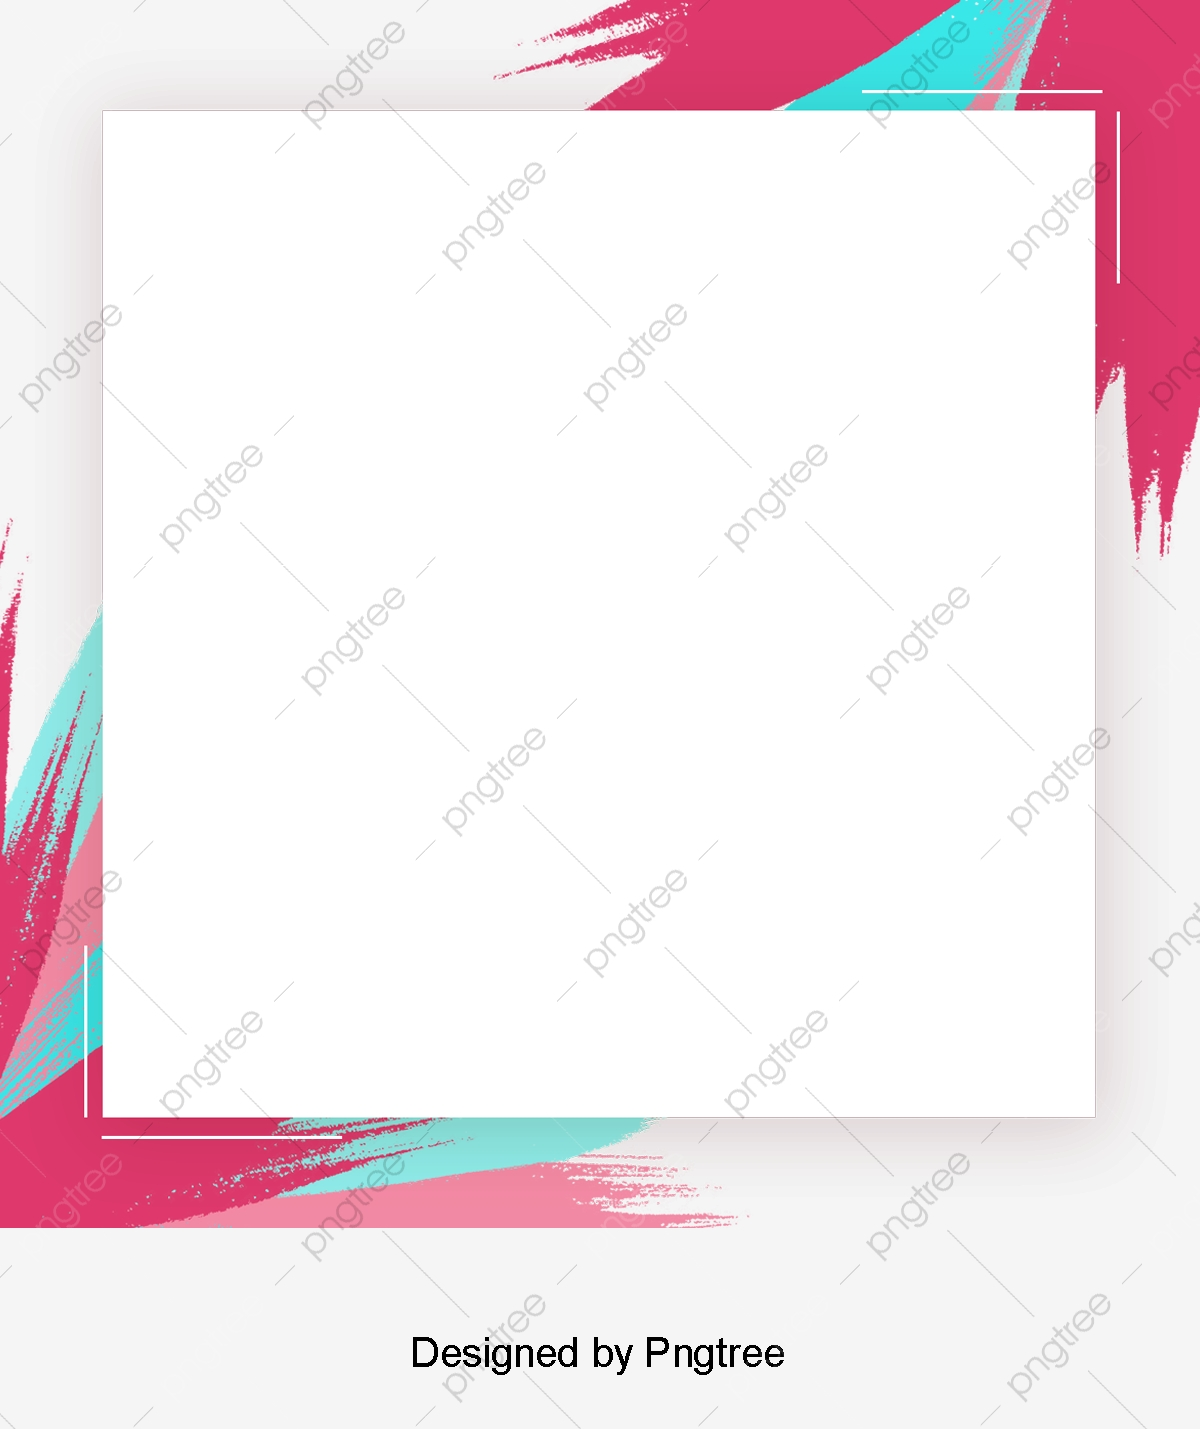 Project file border design 06. Border Design Png Images Vector And Psd Files Free Download On Pngtree